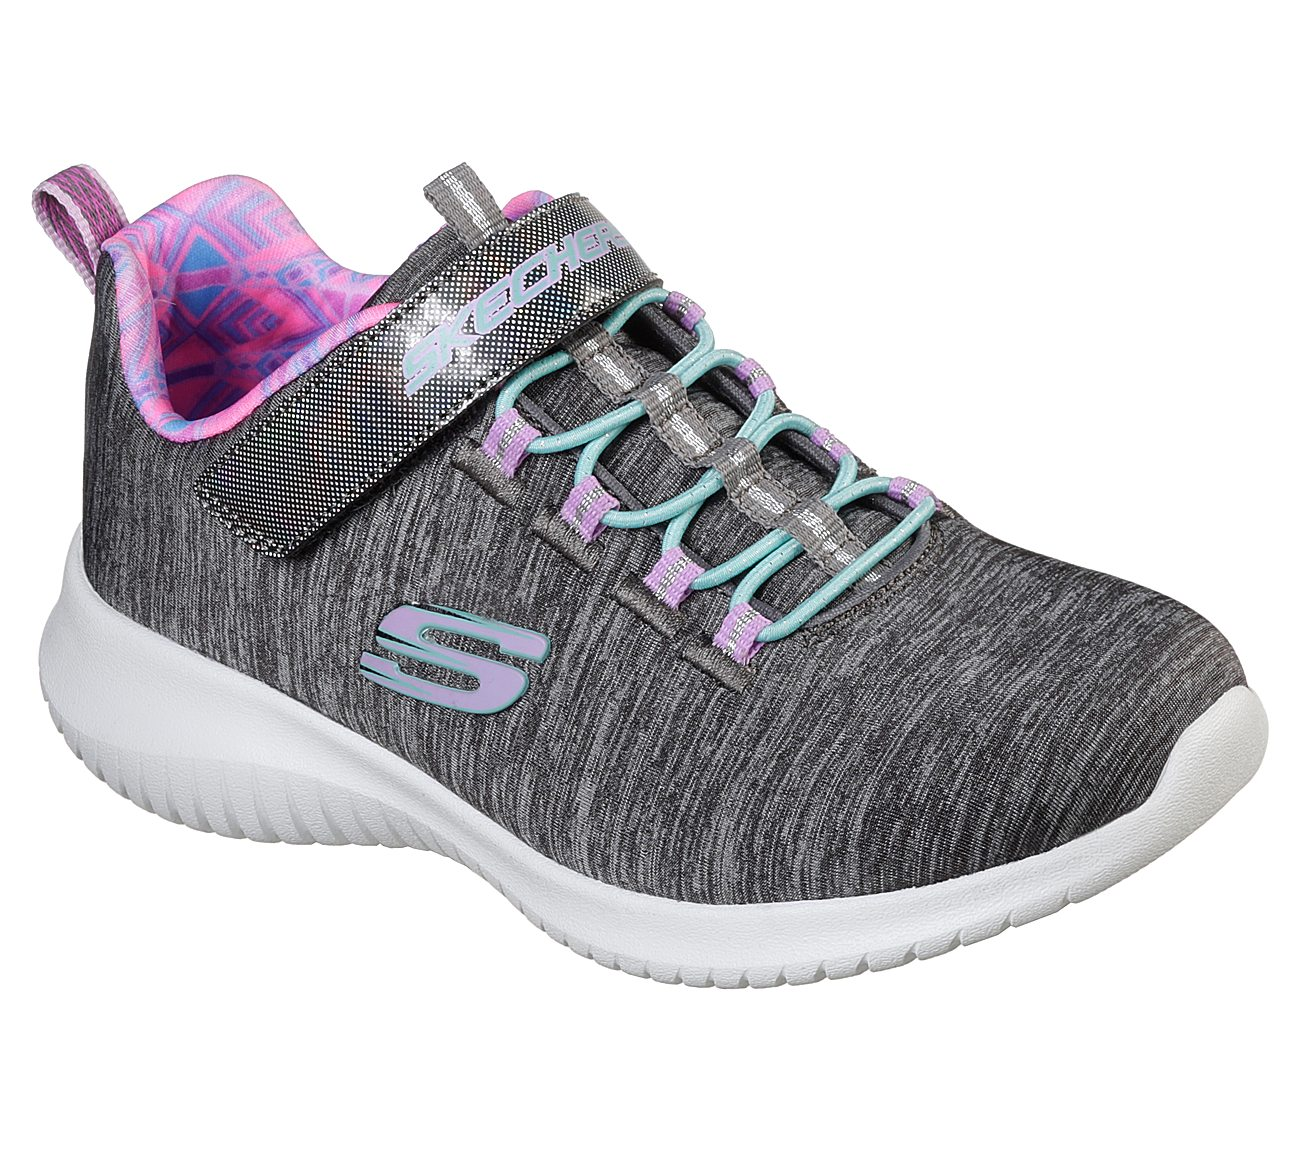 85c34b072f3f Buy SKECHERS Ultra Flex - First Choice Training Shoes Shoes only  27.990